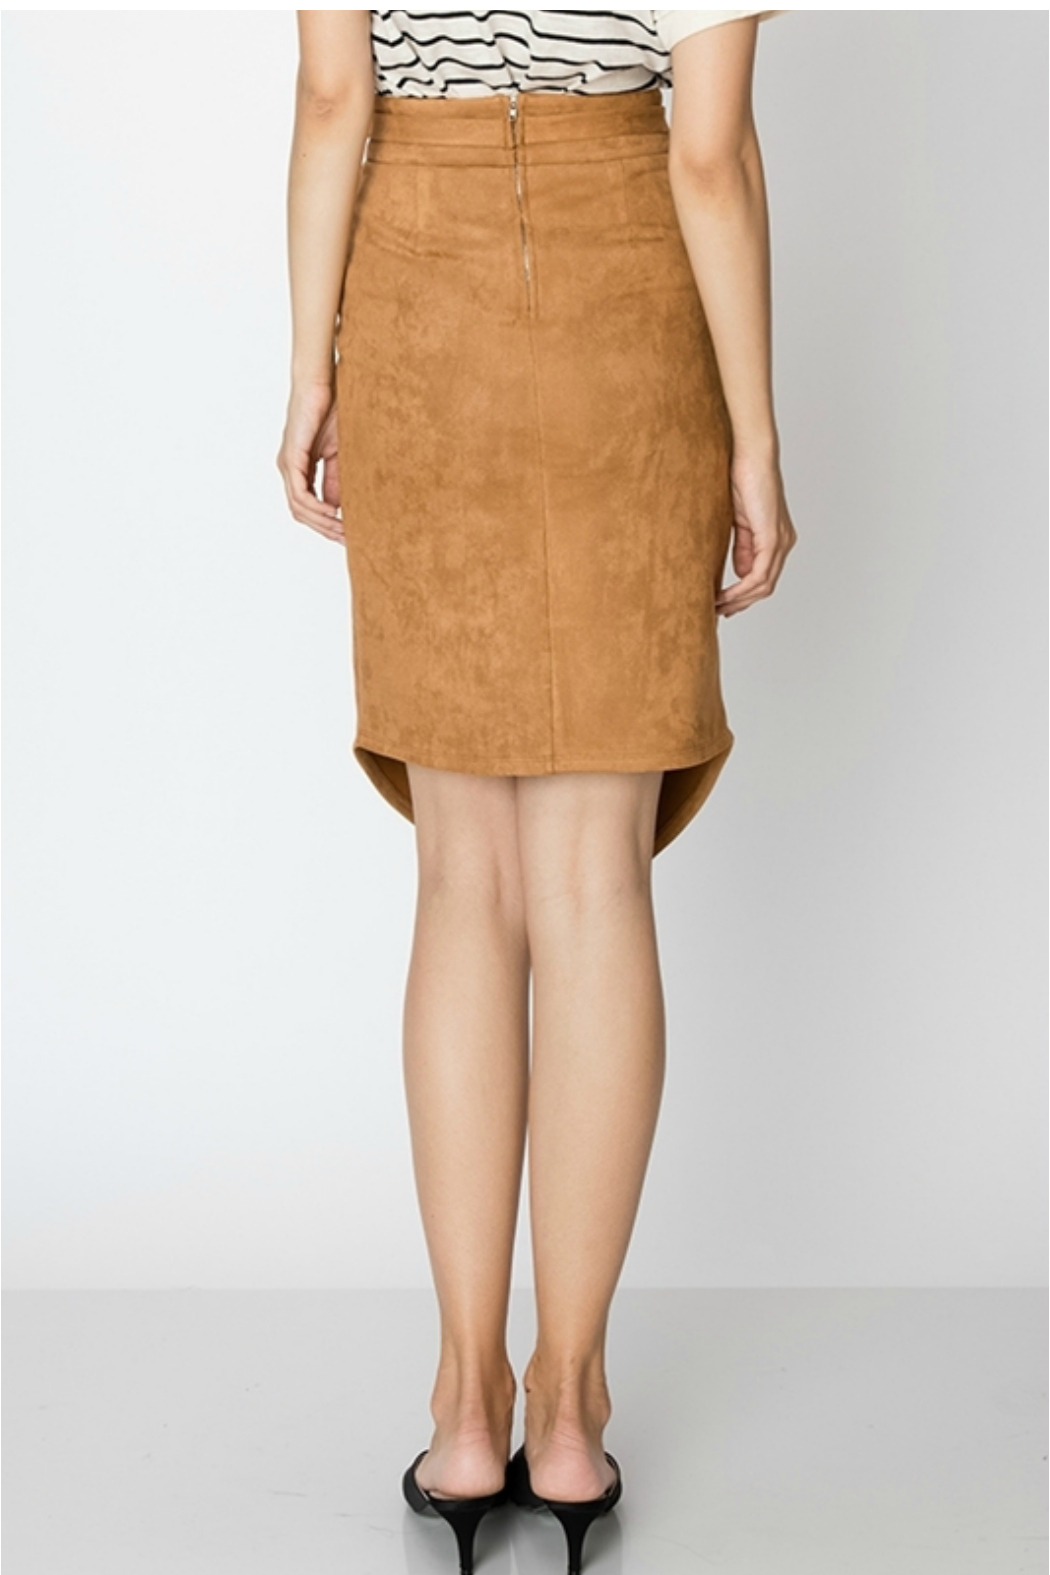 HYFVE SUEDE SKIRT WITH WAIST TIE AND FRONT SLIT - Front Full Image